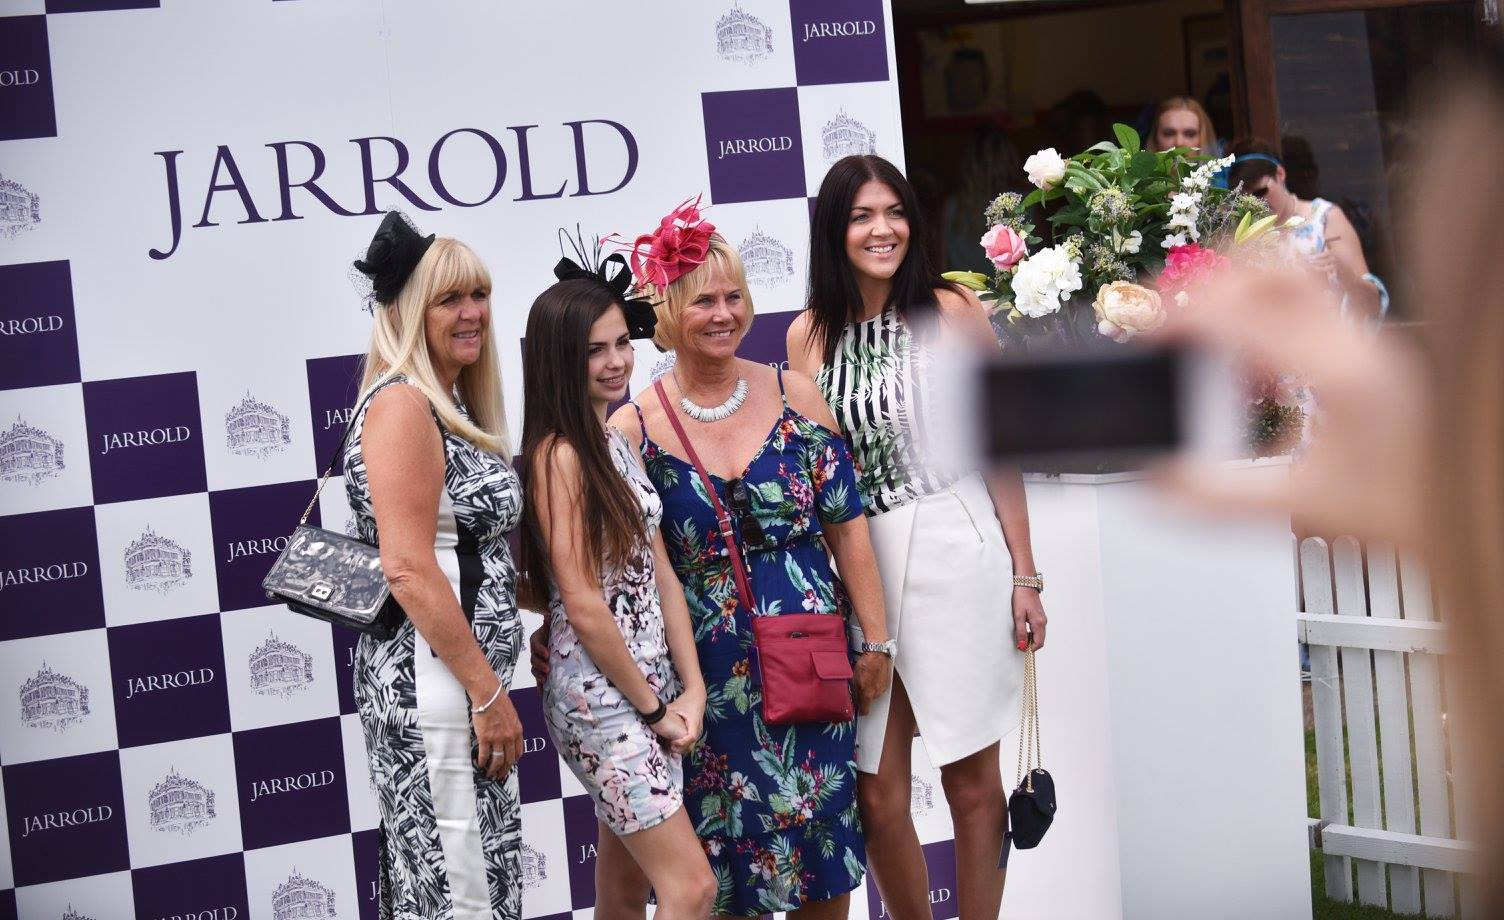 What to wear at Jarrold Ladies Day